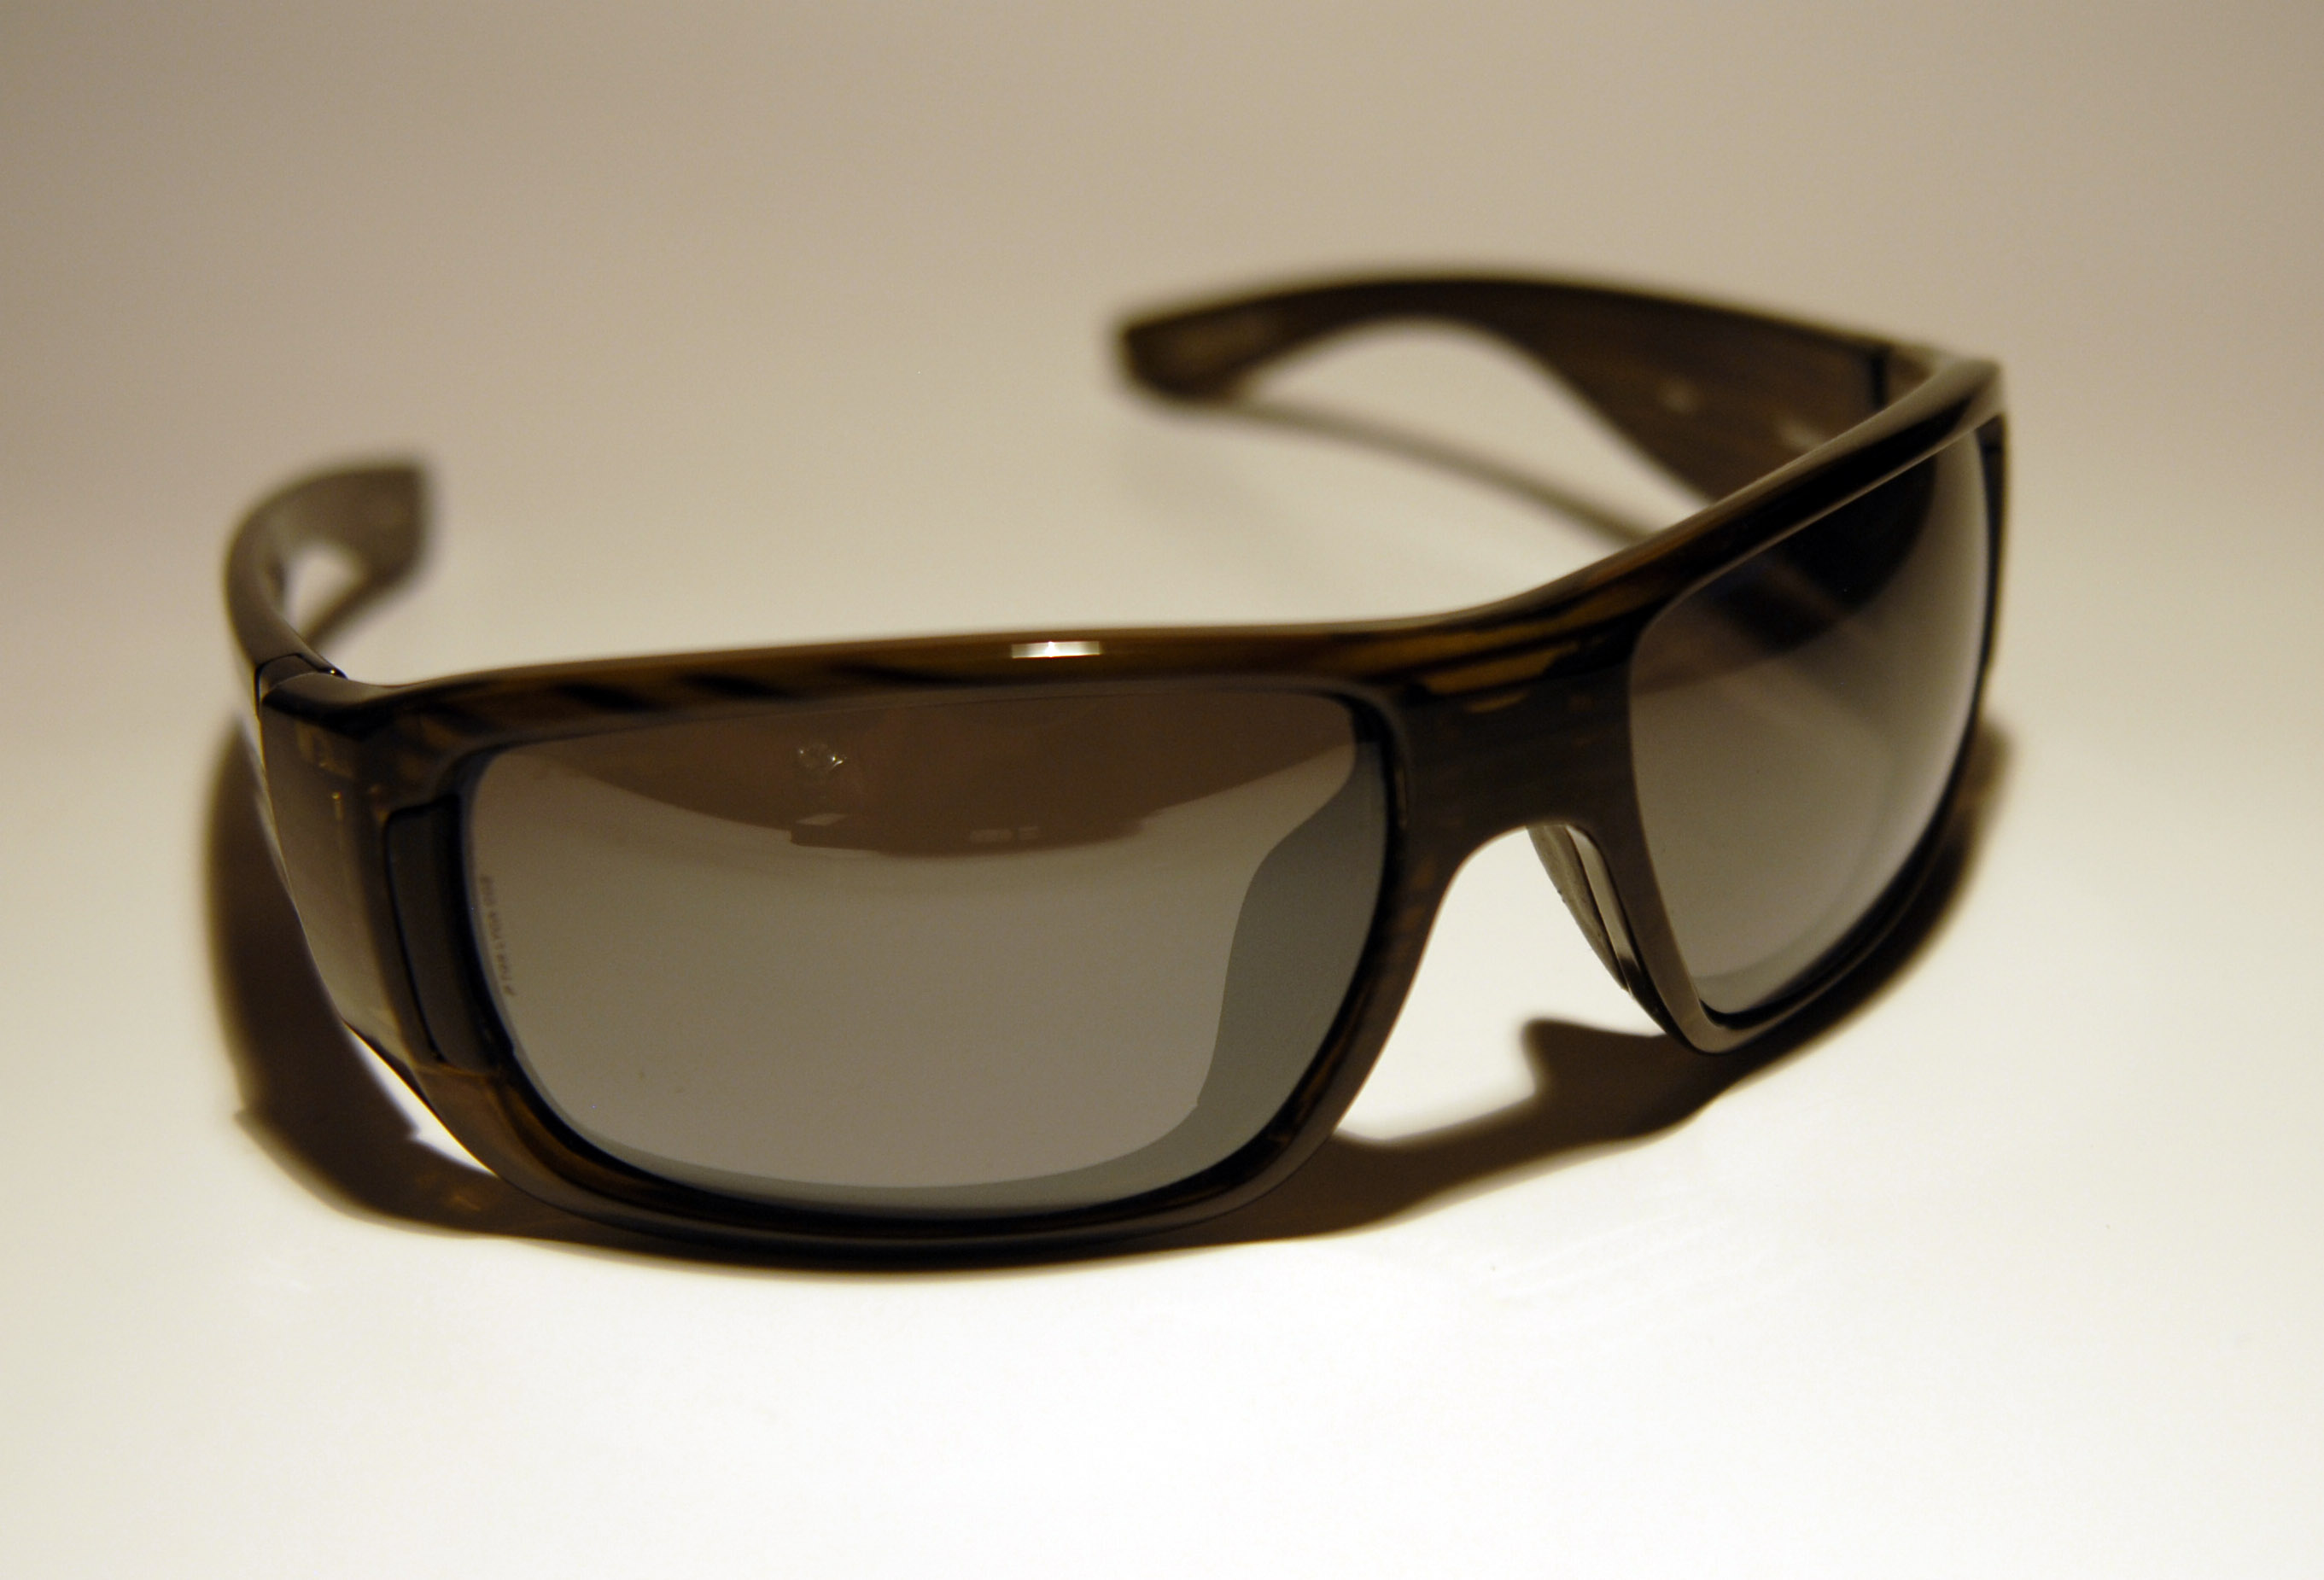 Liberty Sport Eyewear: A Three-for-all Review!